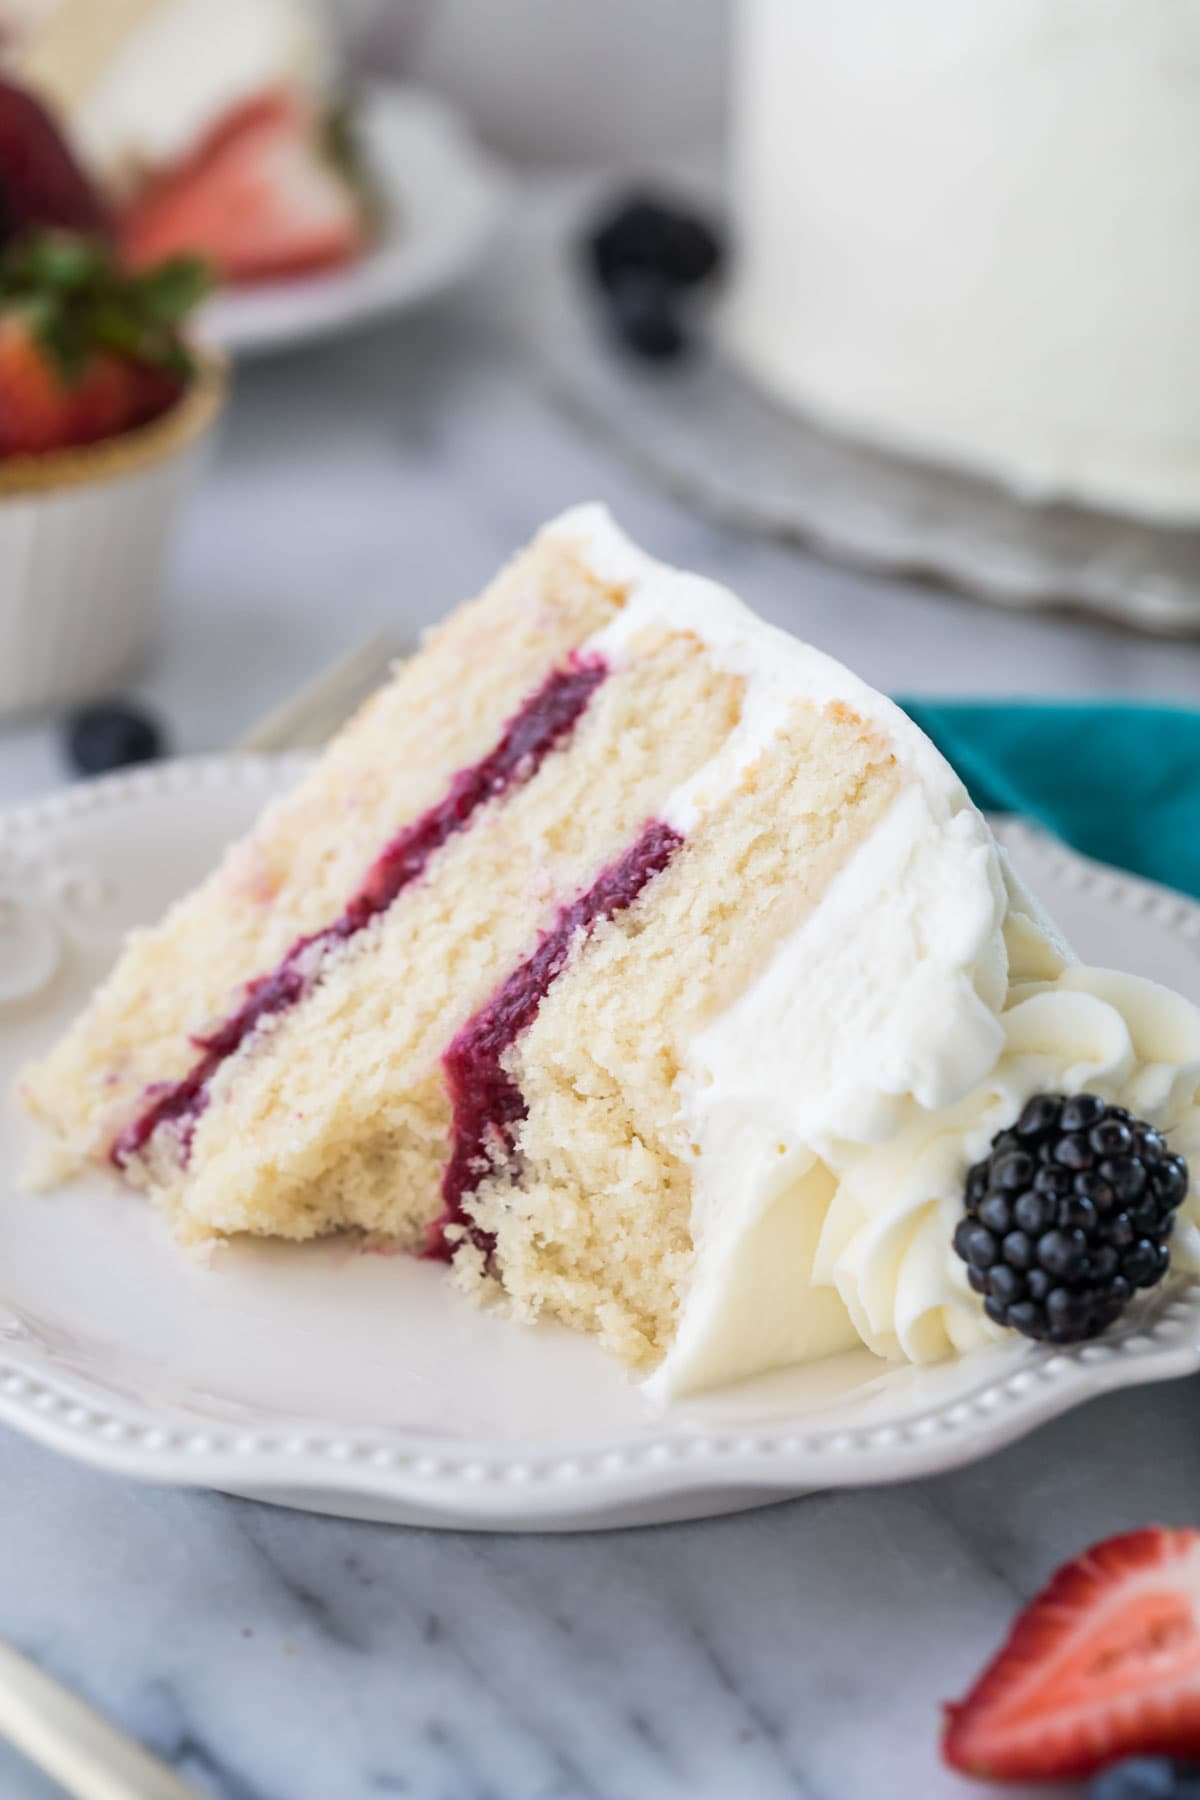 Slice of chantilly cake with a bite missing from it